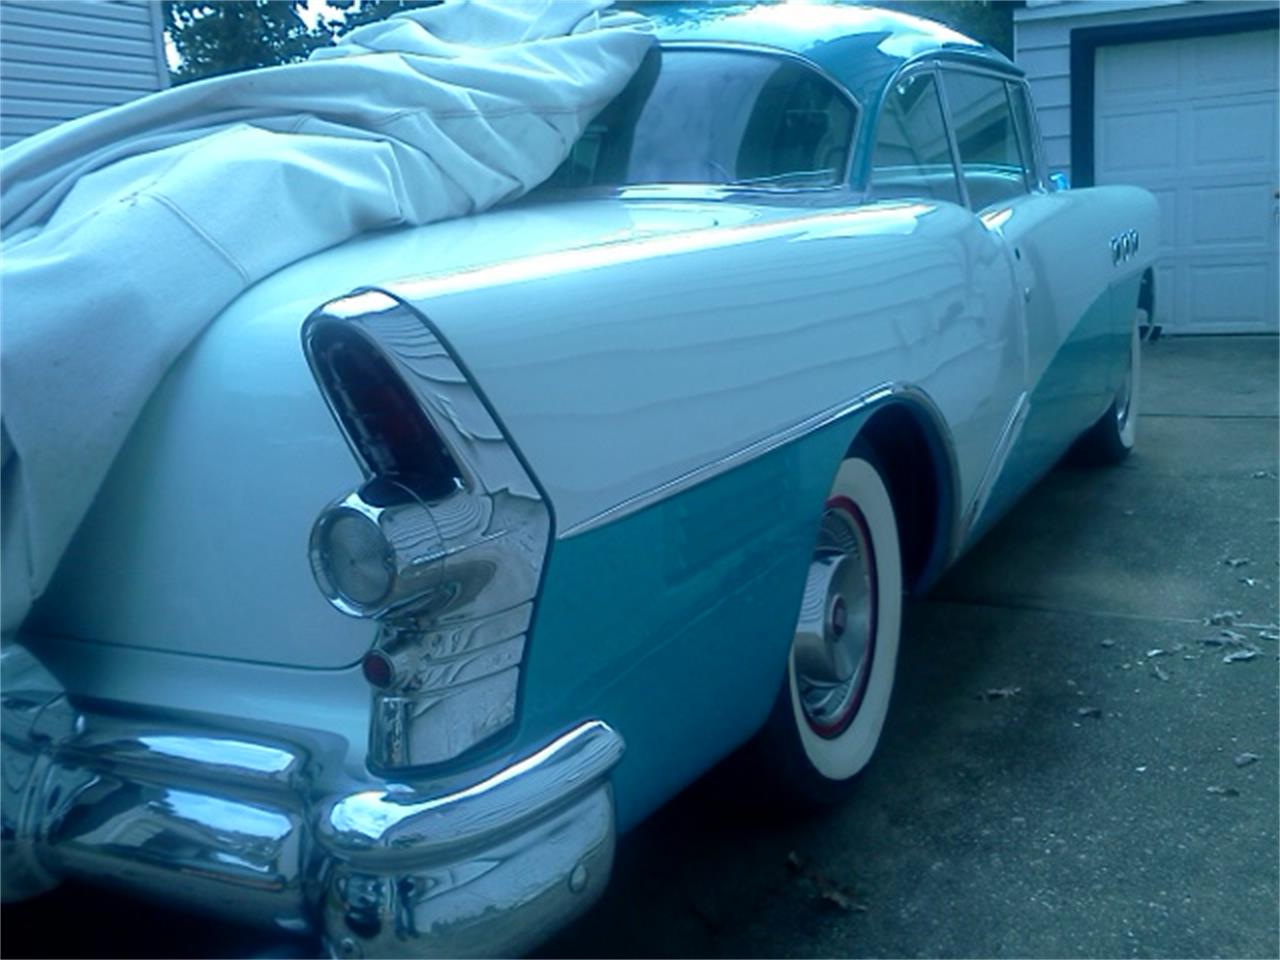 Large Picture of '55 Buick Special located in New York - $29,995.00 Offered by a Private Seller - KZEW